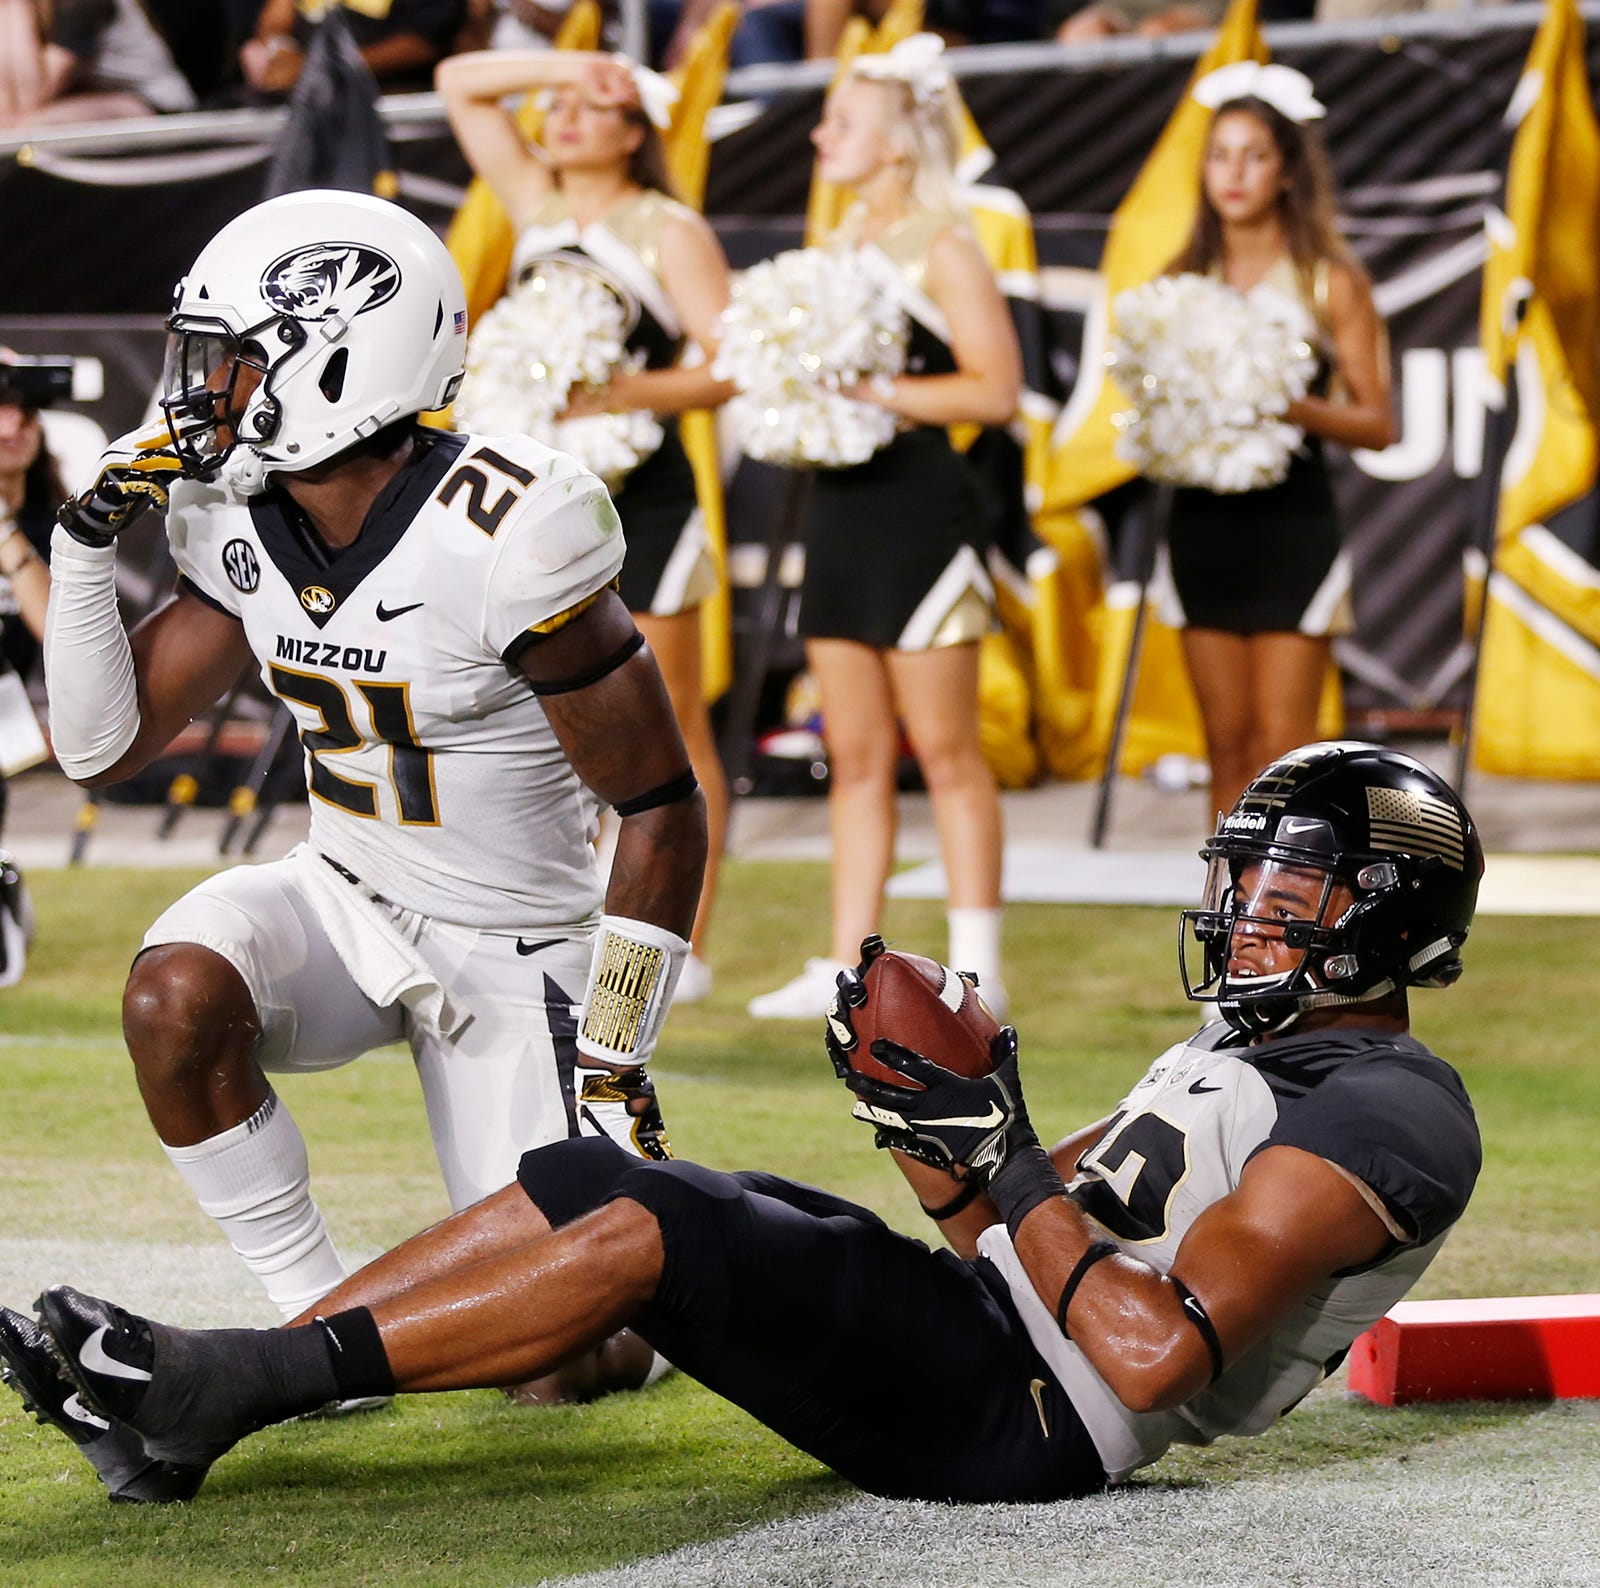 Big Ten to Purdue's Jeff Brohm: Sparks' TD should not have been overturned